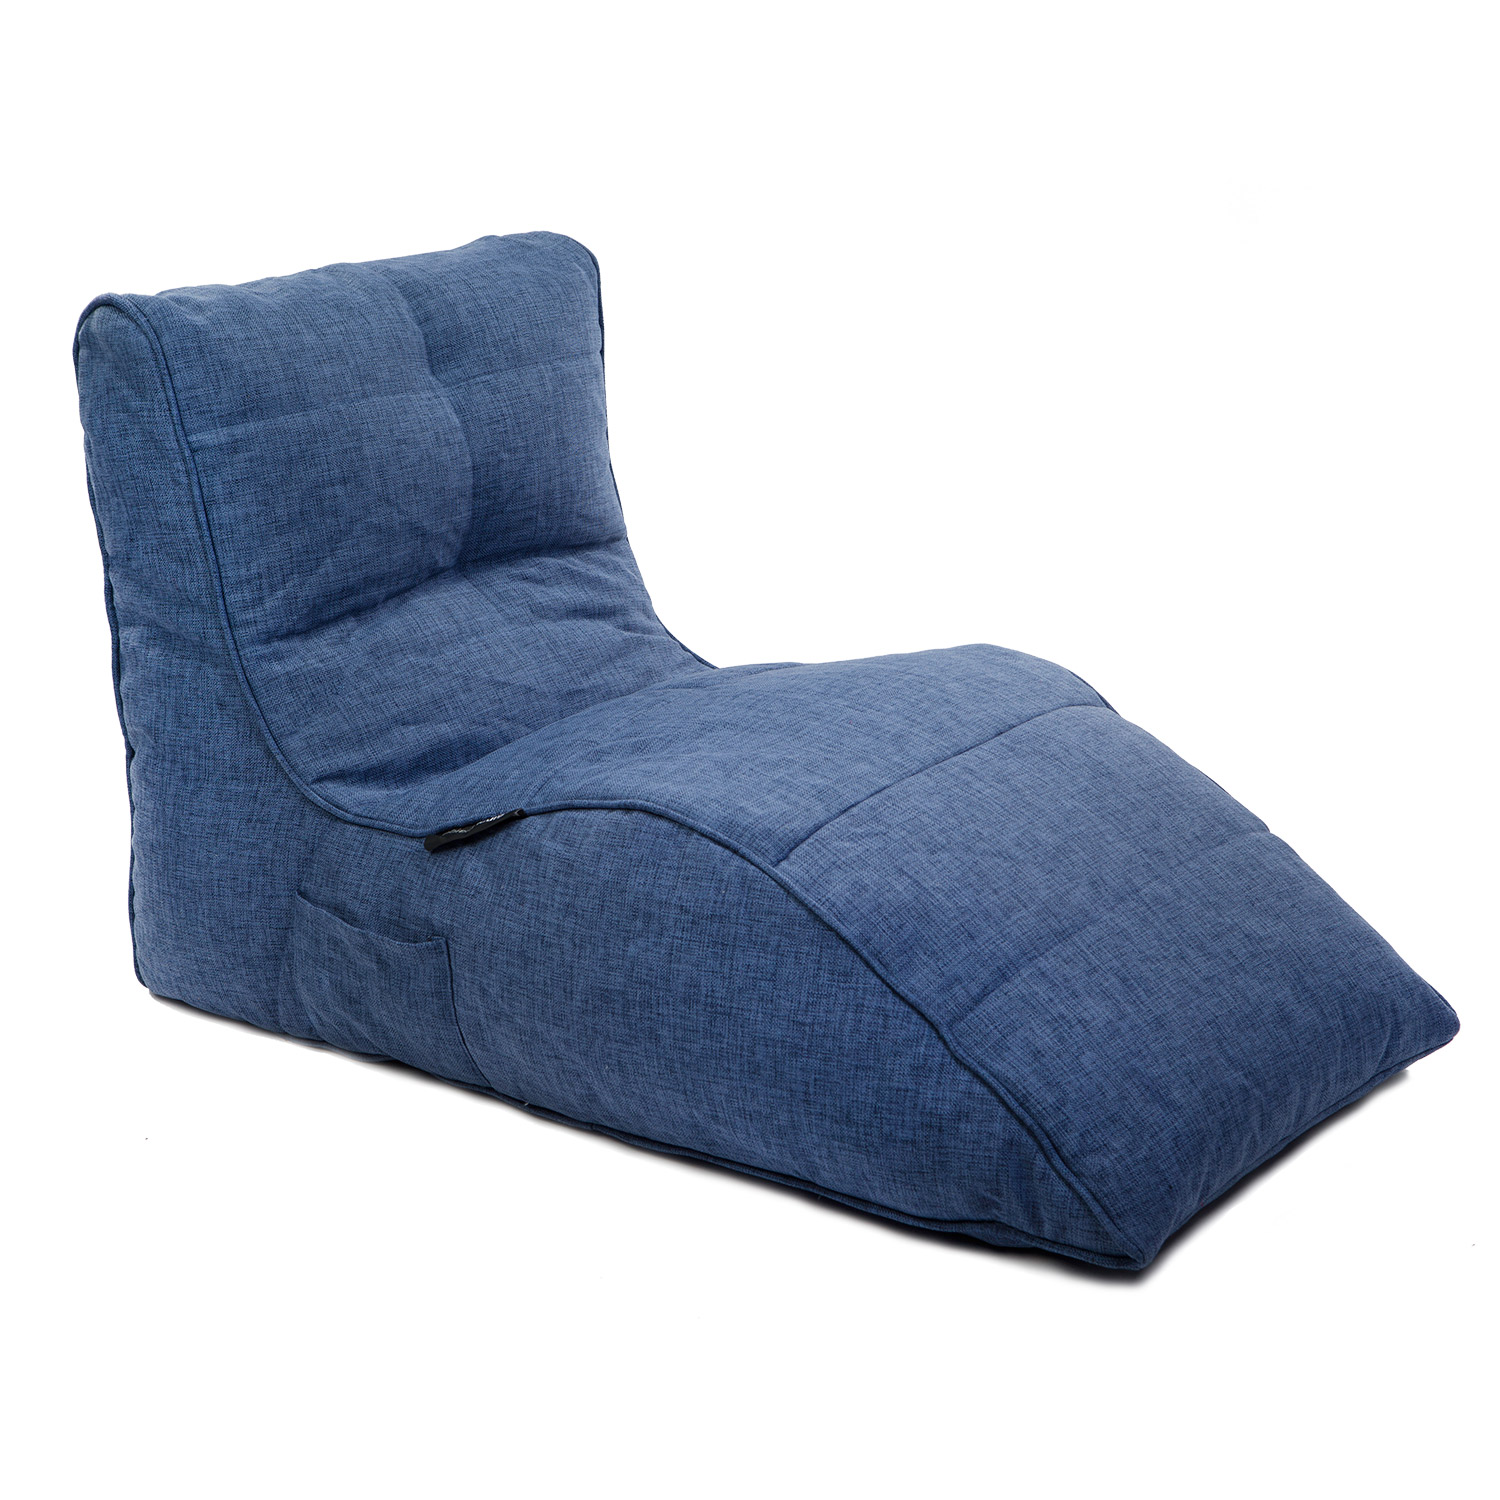 Home Cinema Indoor Bean Bags Avatar Lounger Blue Jazz